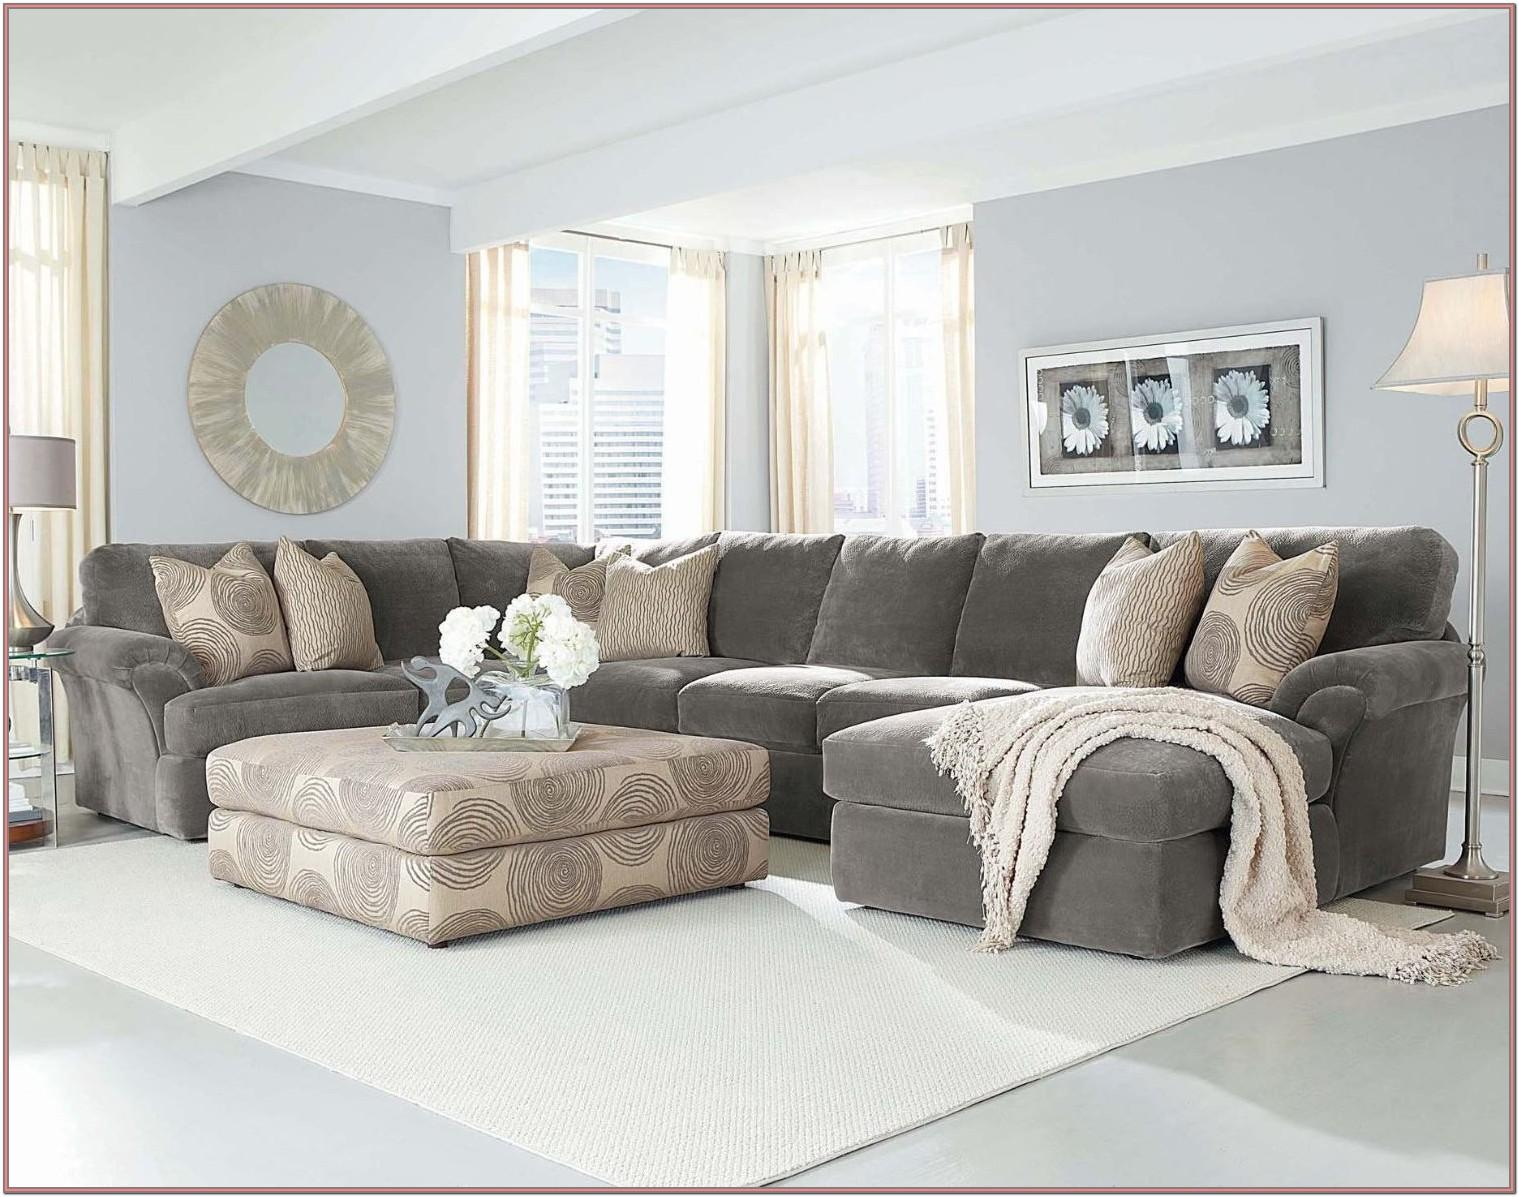 Large Sectional Living Room Ideas